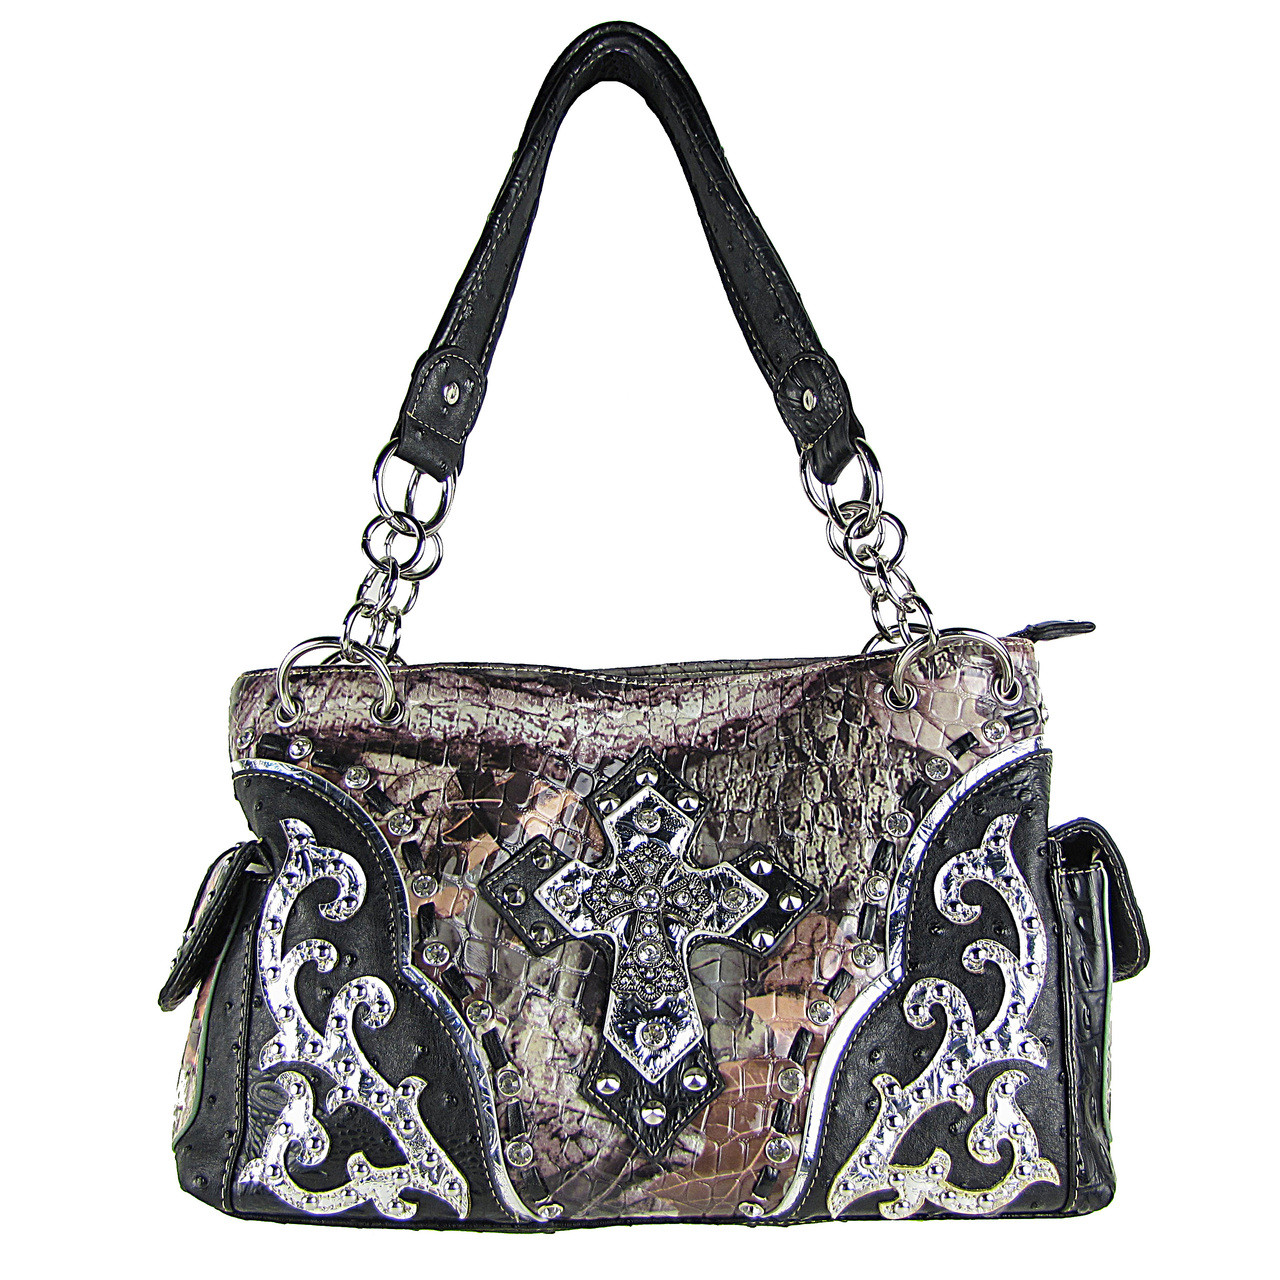 BLACK WESTERN STUDDED RHINESTONE MOSSY CAMO METALLIC CROSS LOOK SHOULDER HANDBAG HB1-HC402-10BLK